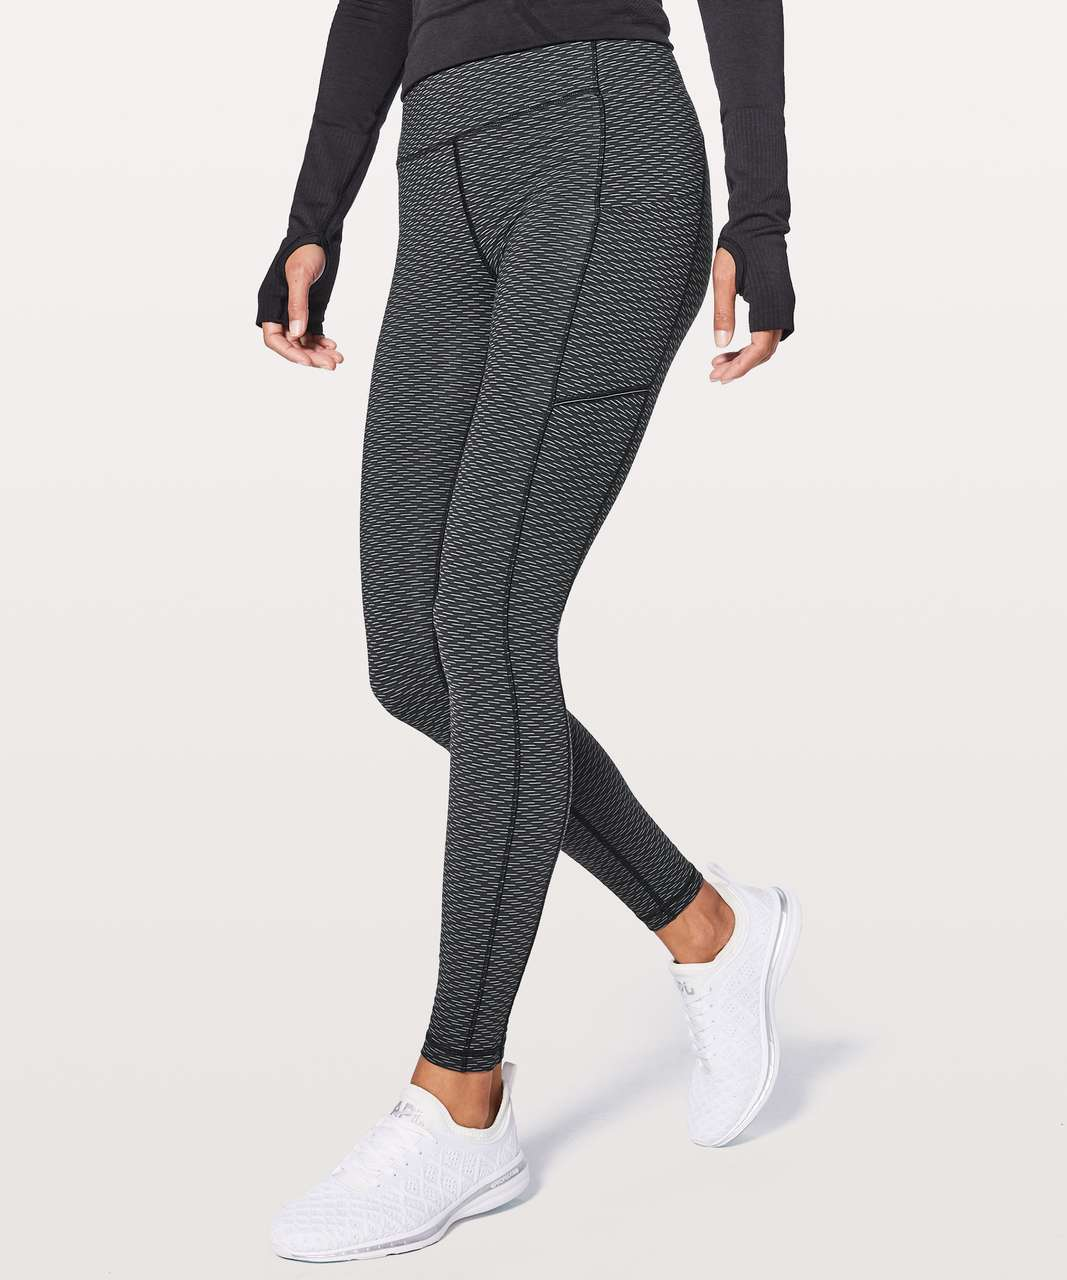 "Lululemon Speed Up Tight 28"" - Score Jacquard Black Luna"